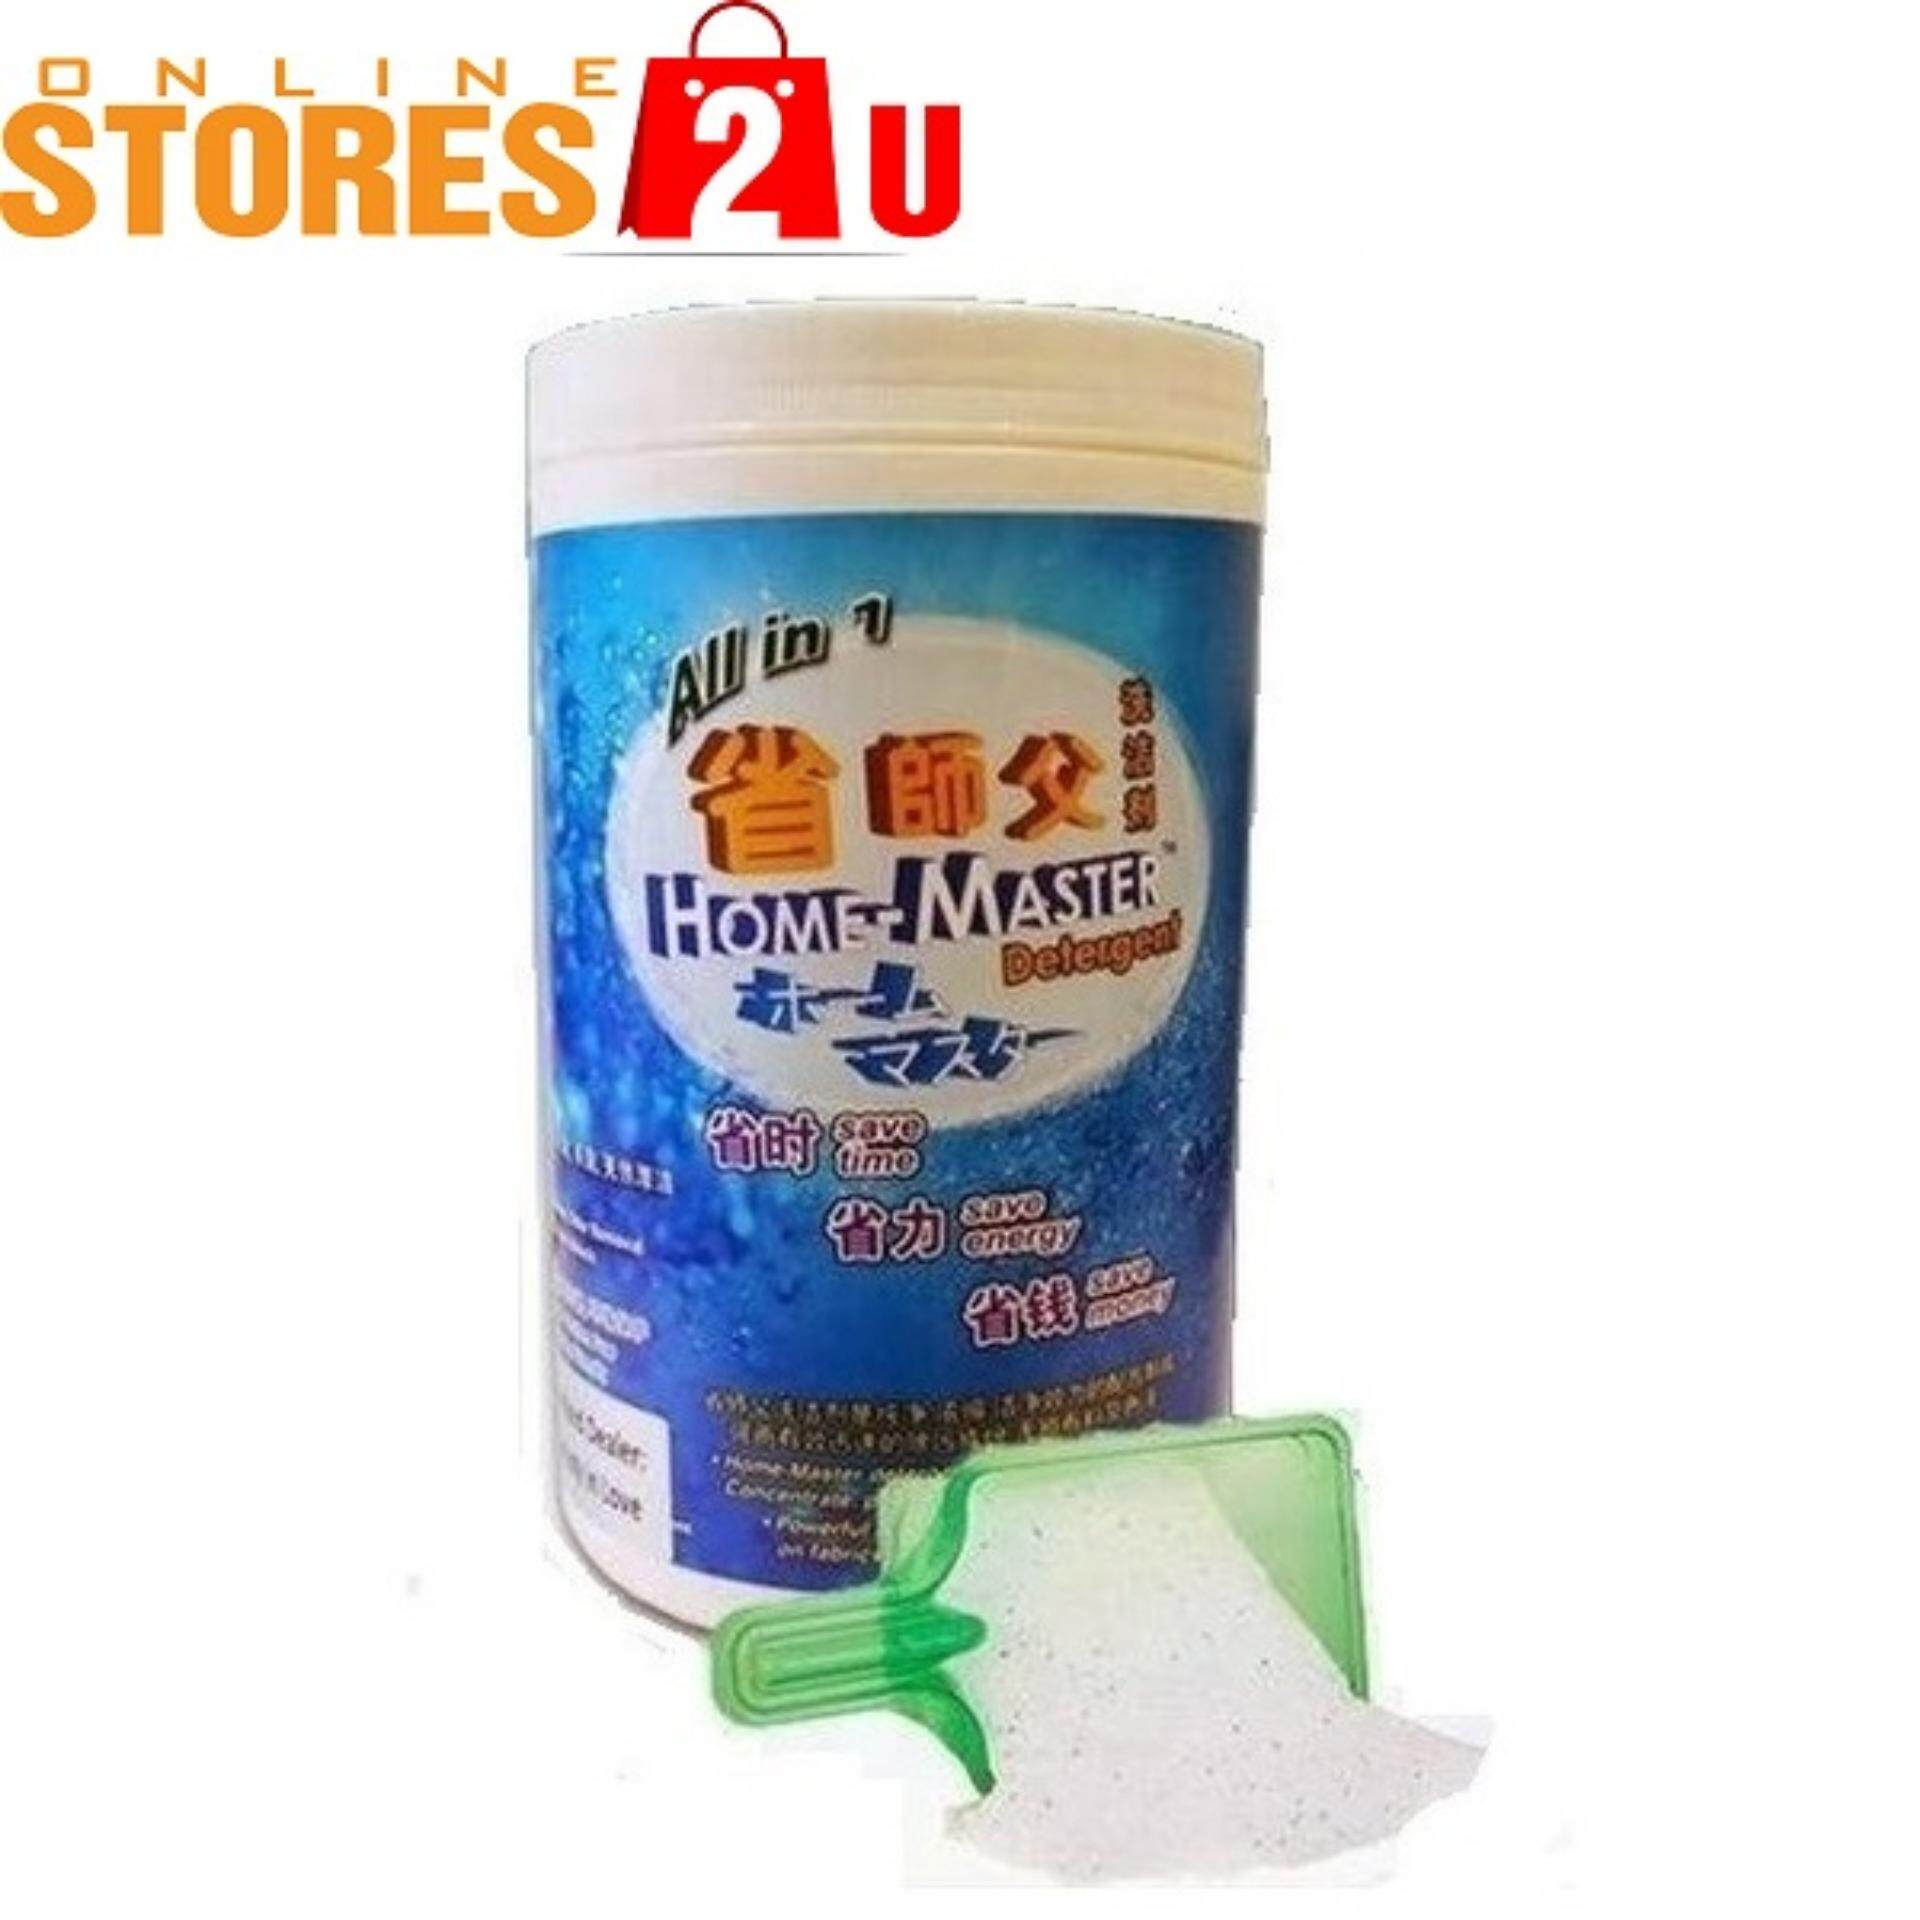 [Stores2u] 1Kg Home-Master Detergent Home Master All In 1 Powder Cleaner